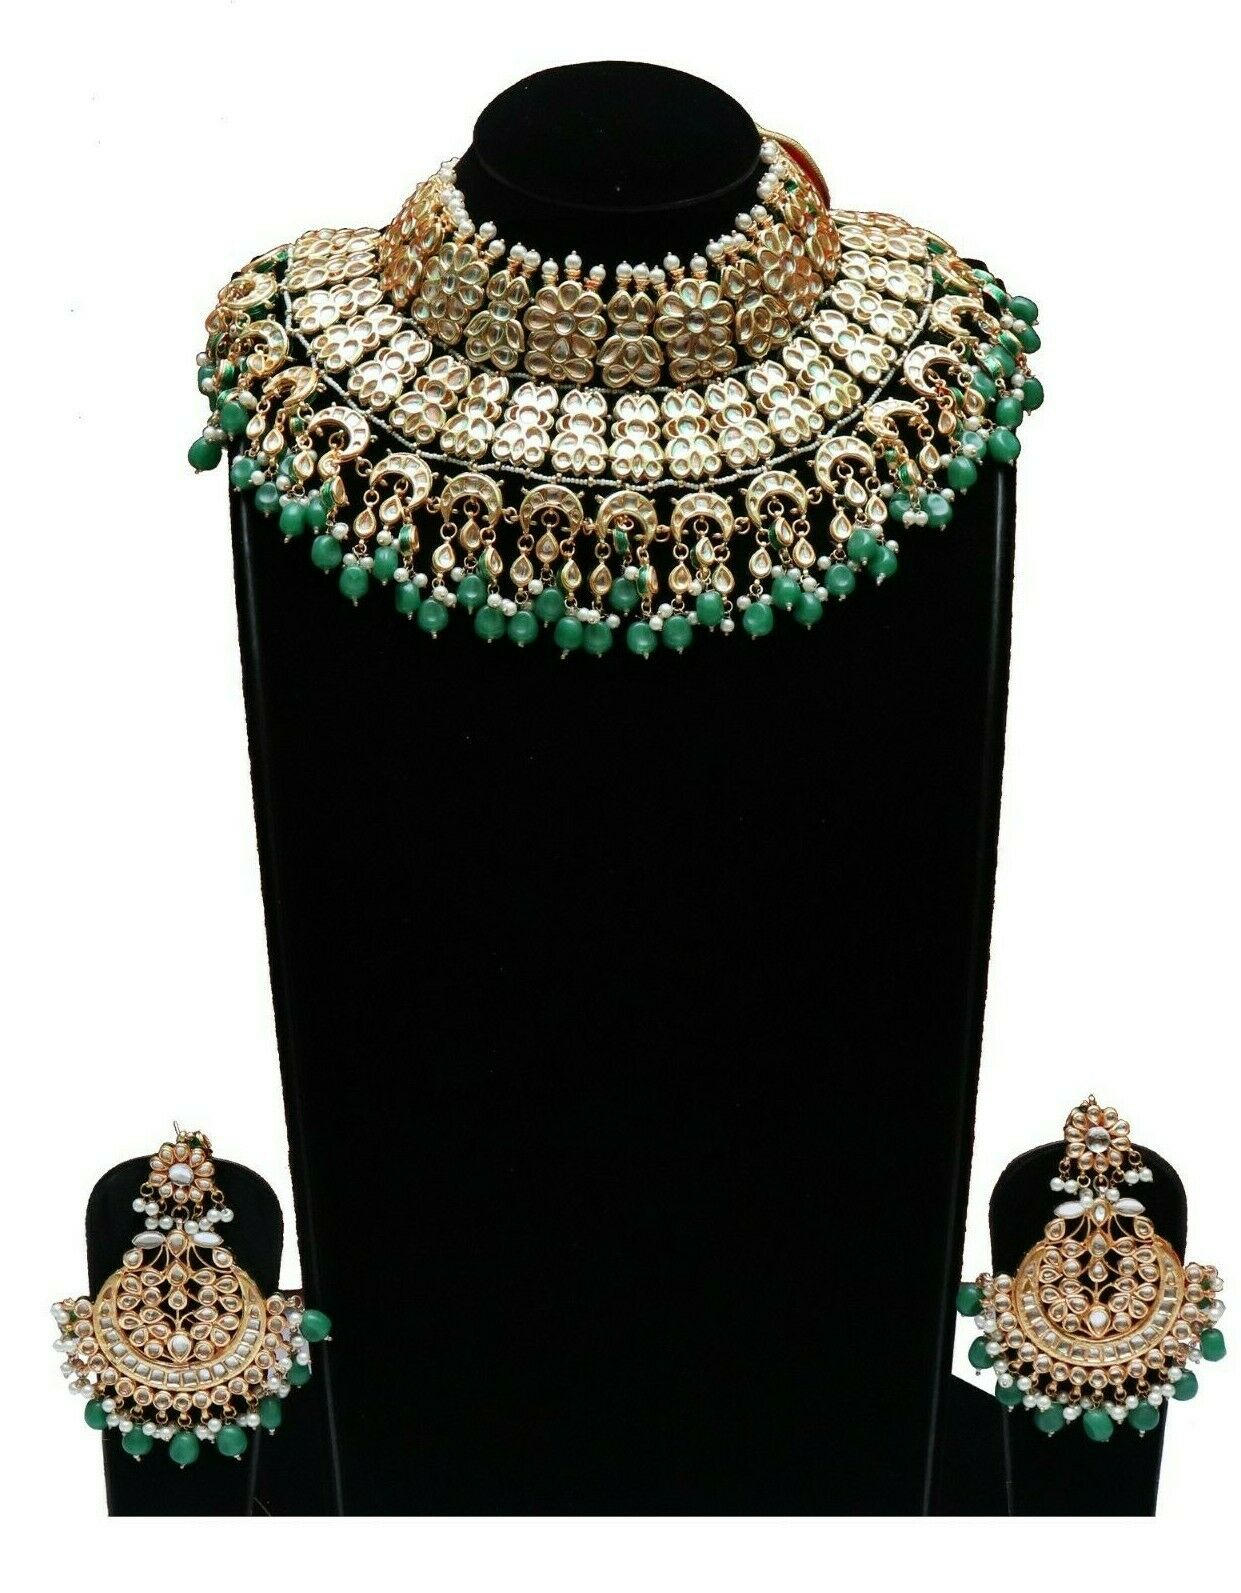 Indian Bridal Kundan Studded Green Pearl Choker Jewelry Set - FashionEmpire'86